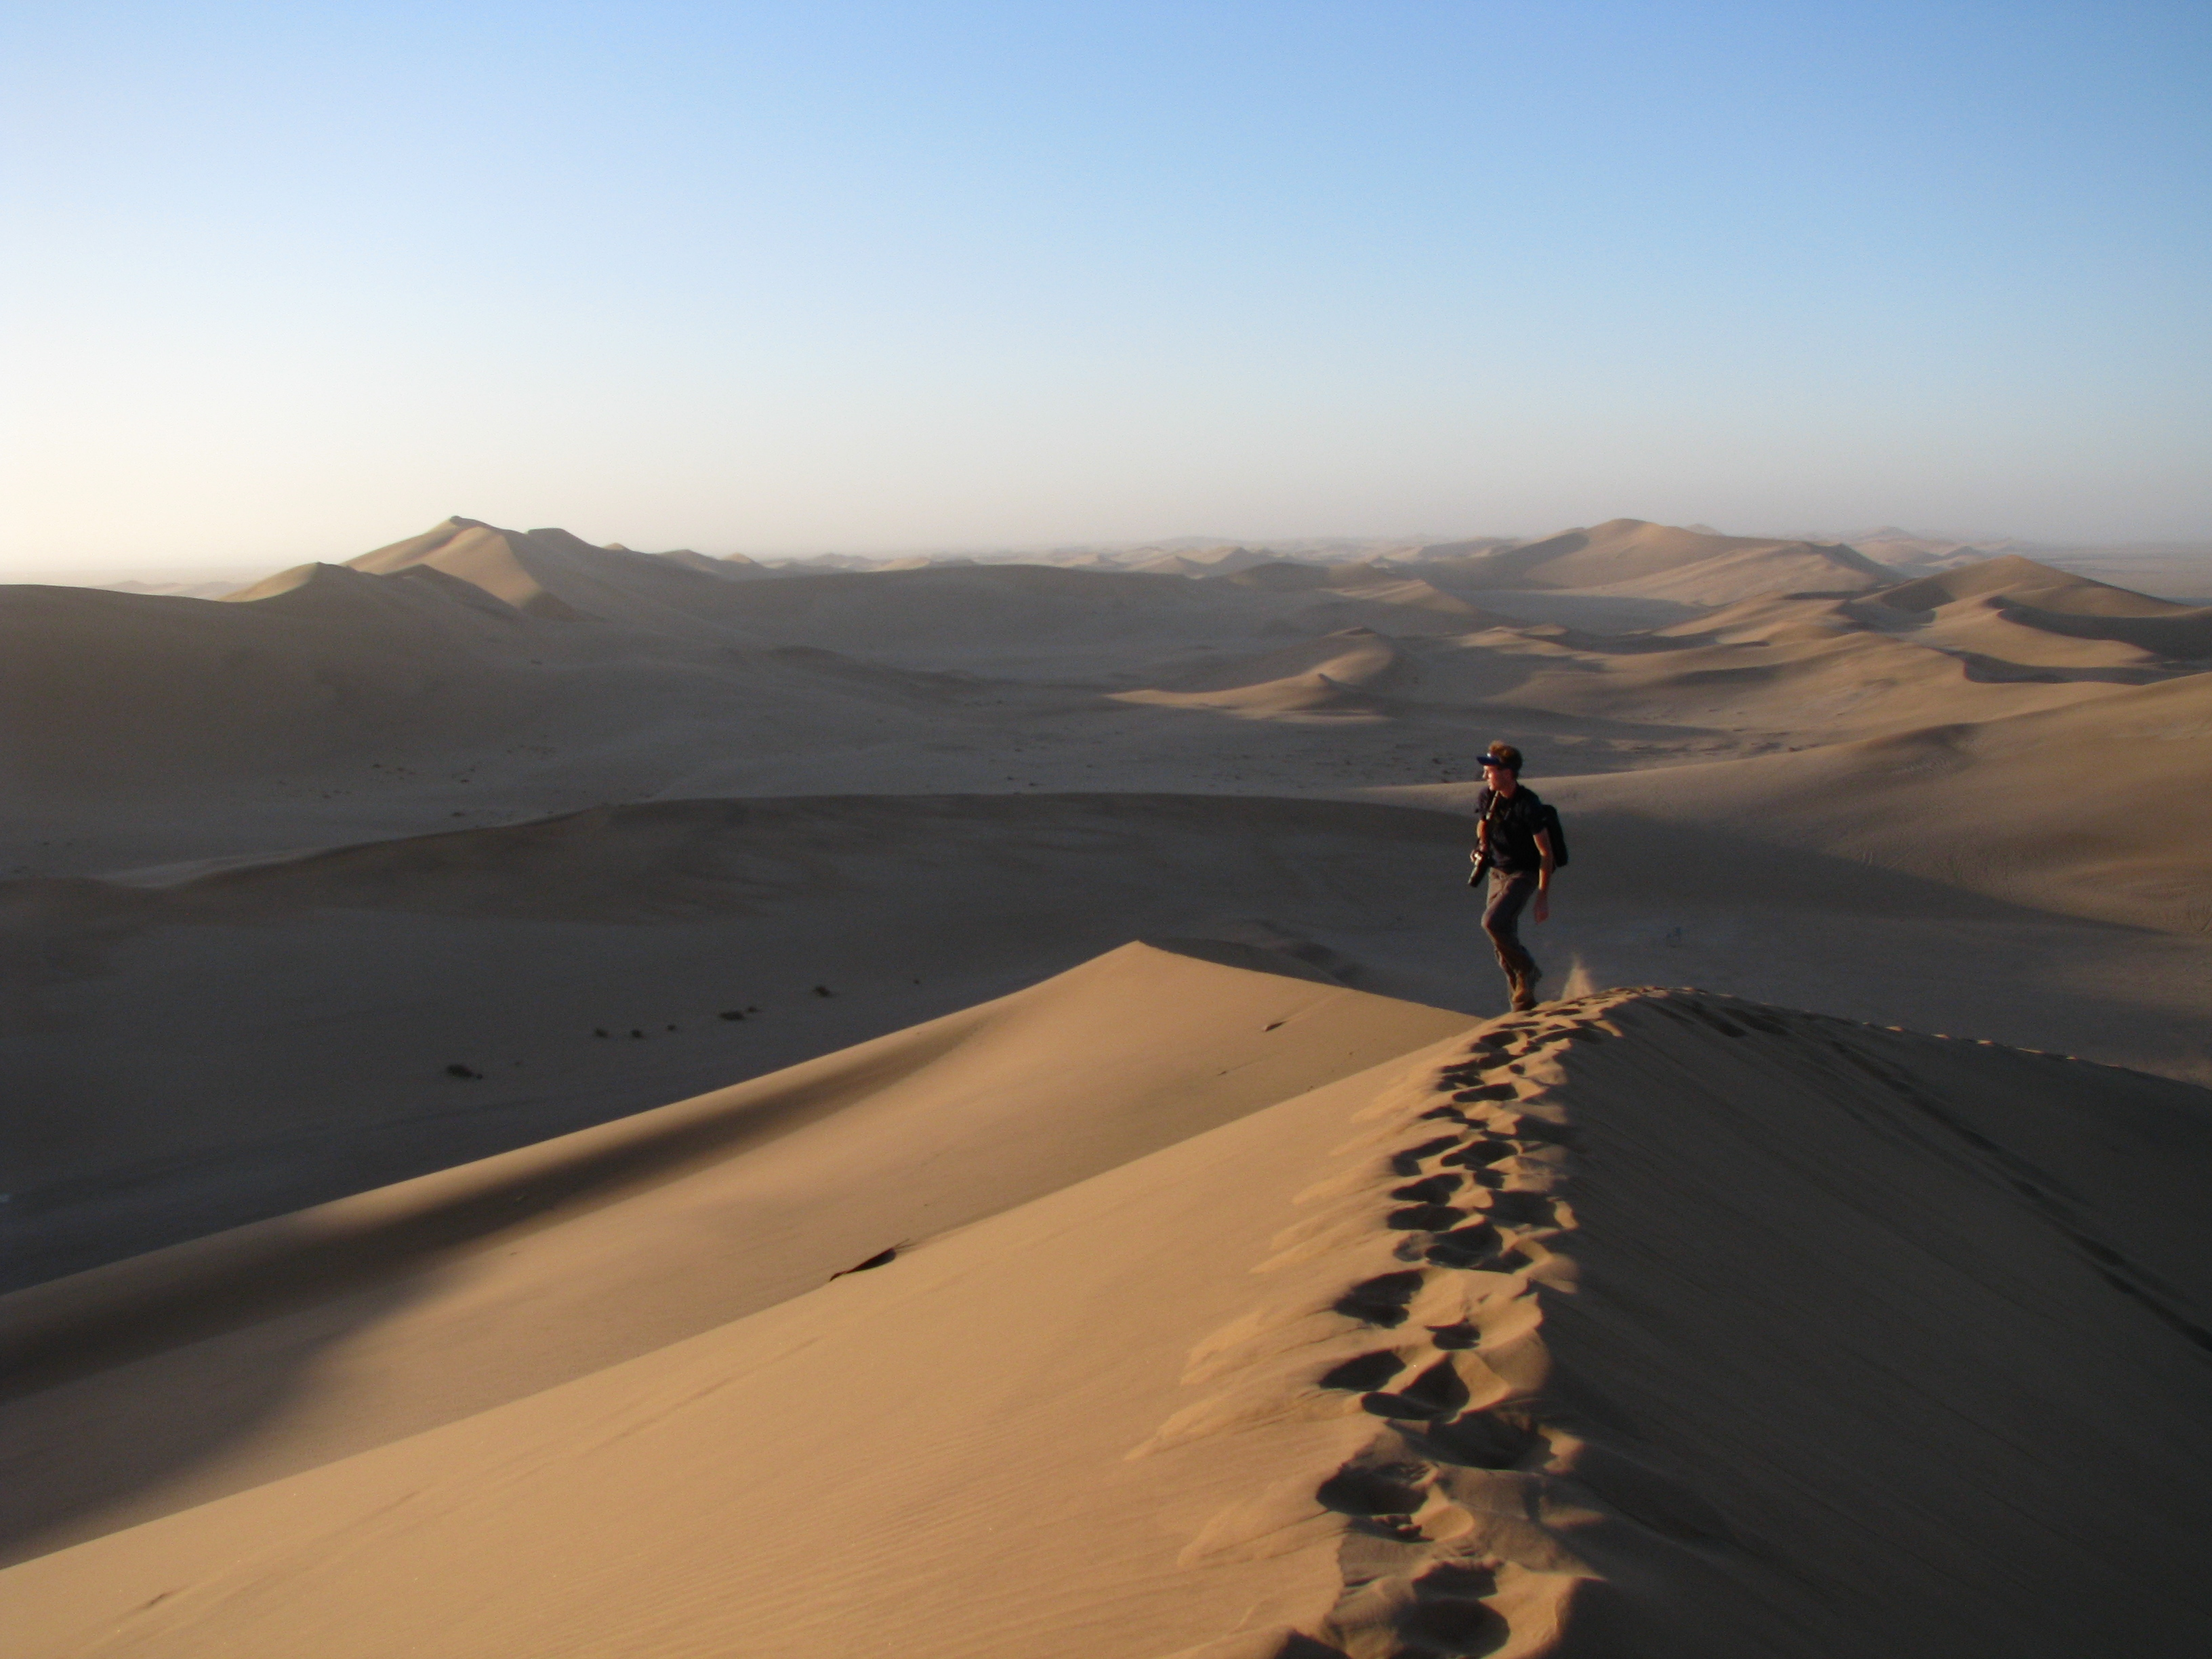 Skye Fitzgerald, Director - On location, Namibia